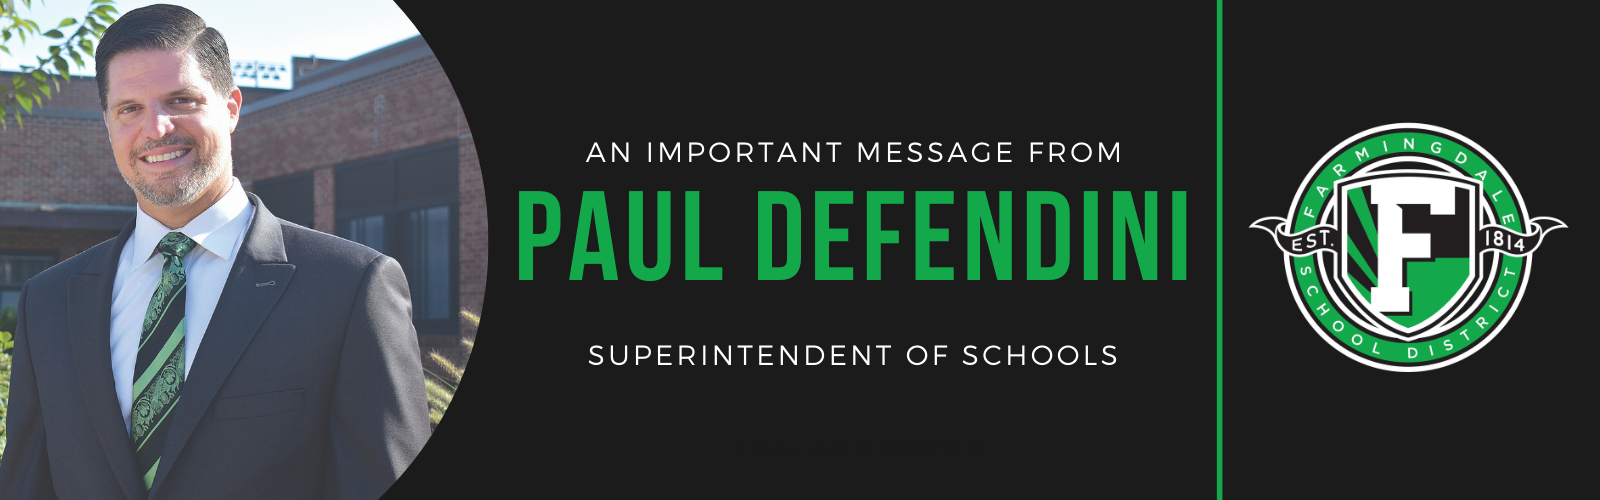 A Message from Superintendent Paul Defendini